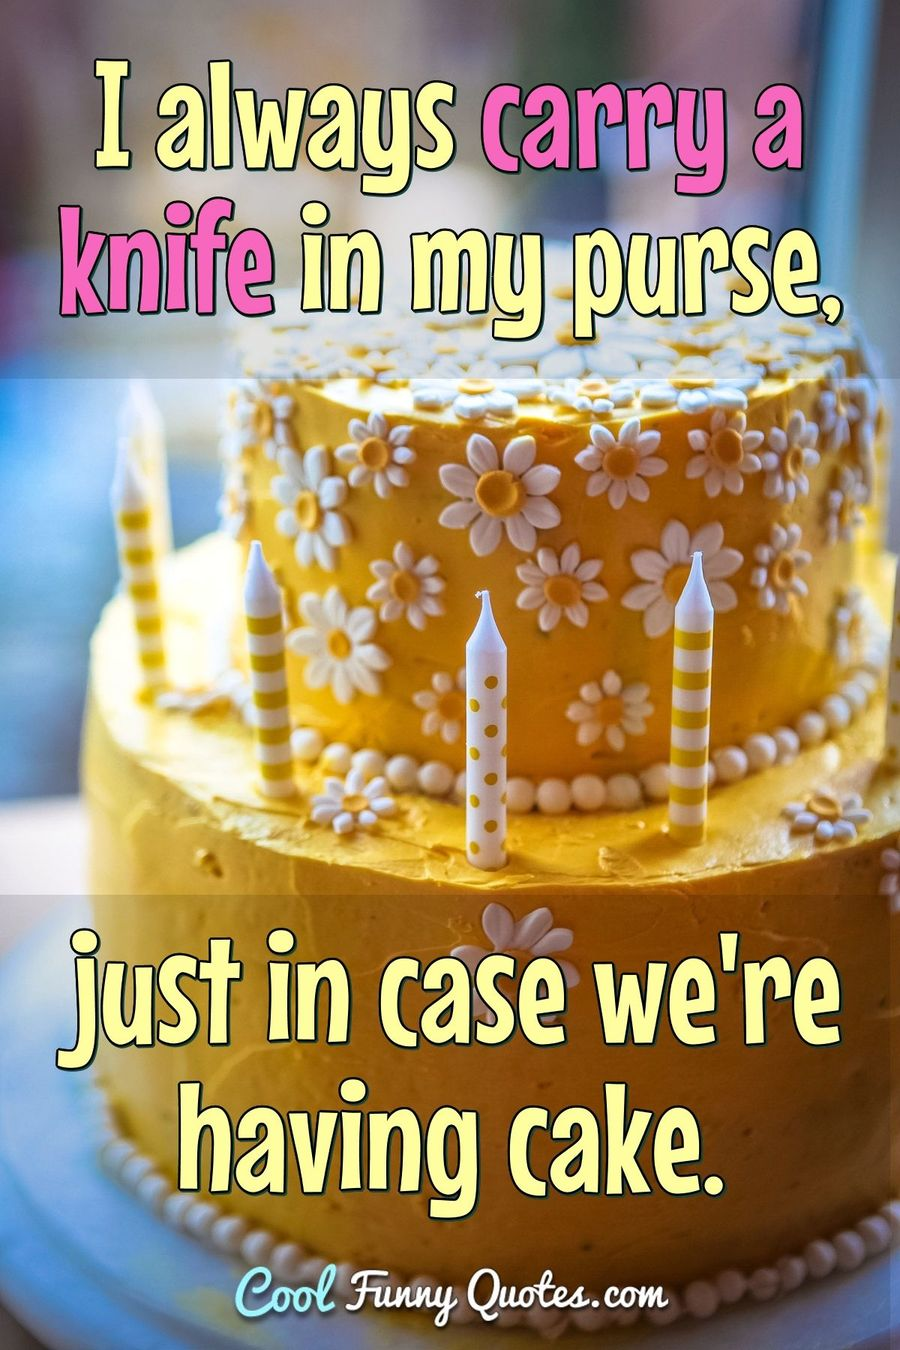 Quotes About Cake : quotes, about, Always, Carry, Knife, Purse,, We're, Having, Cake.